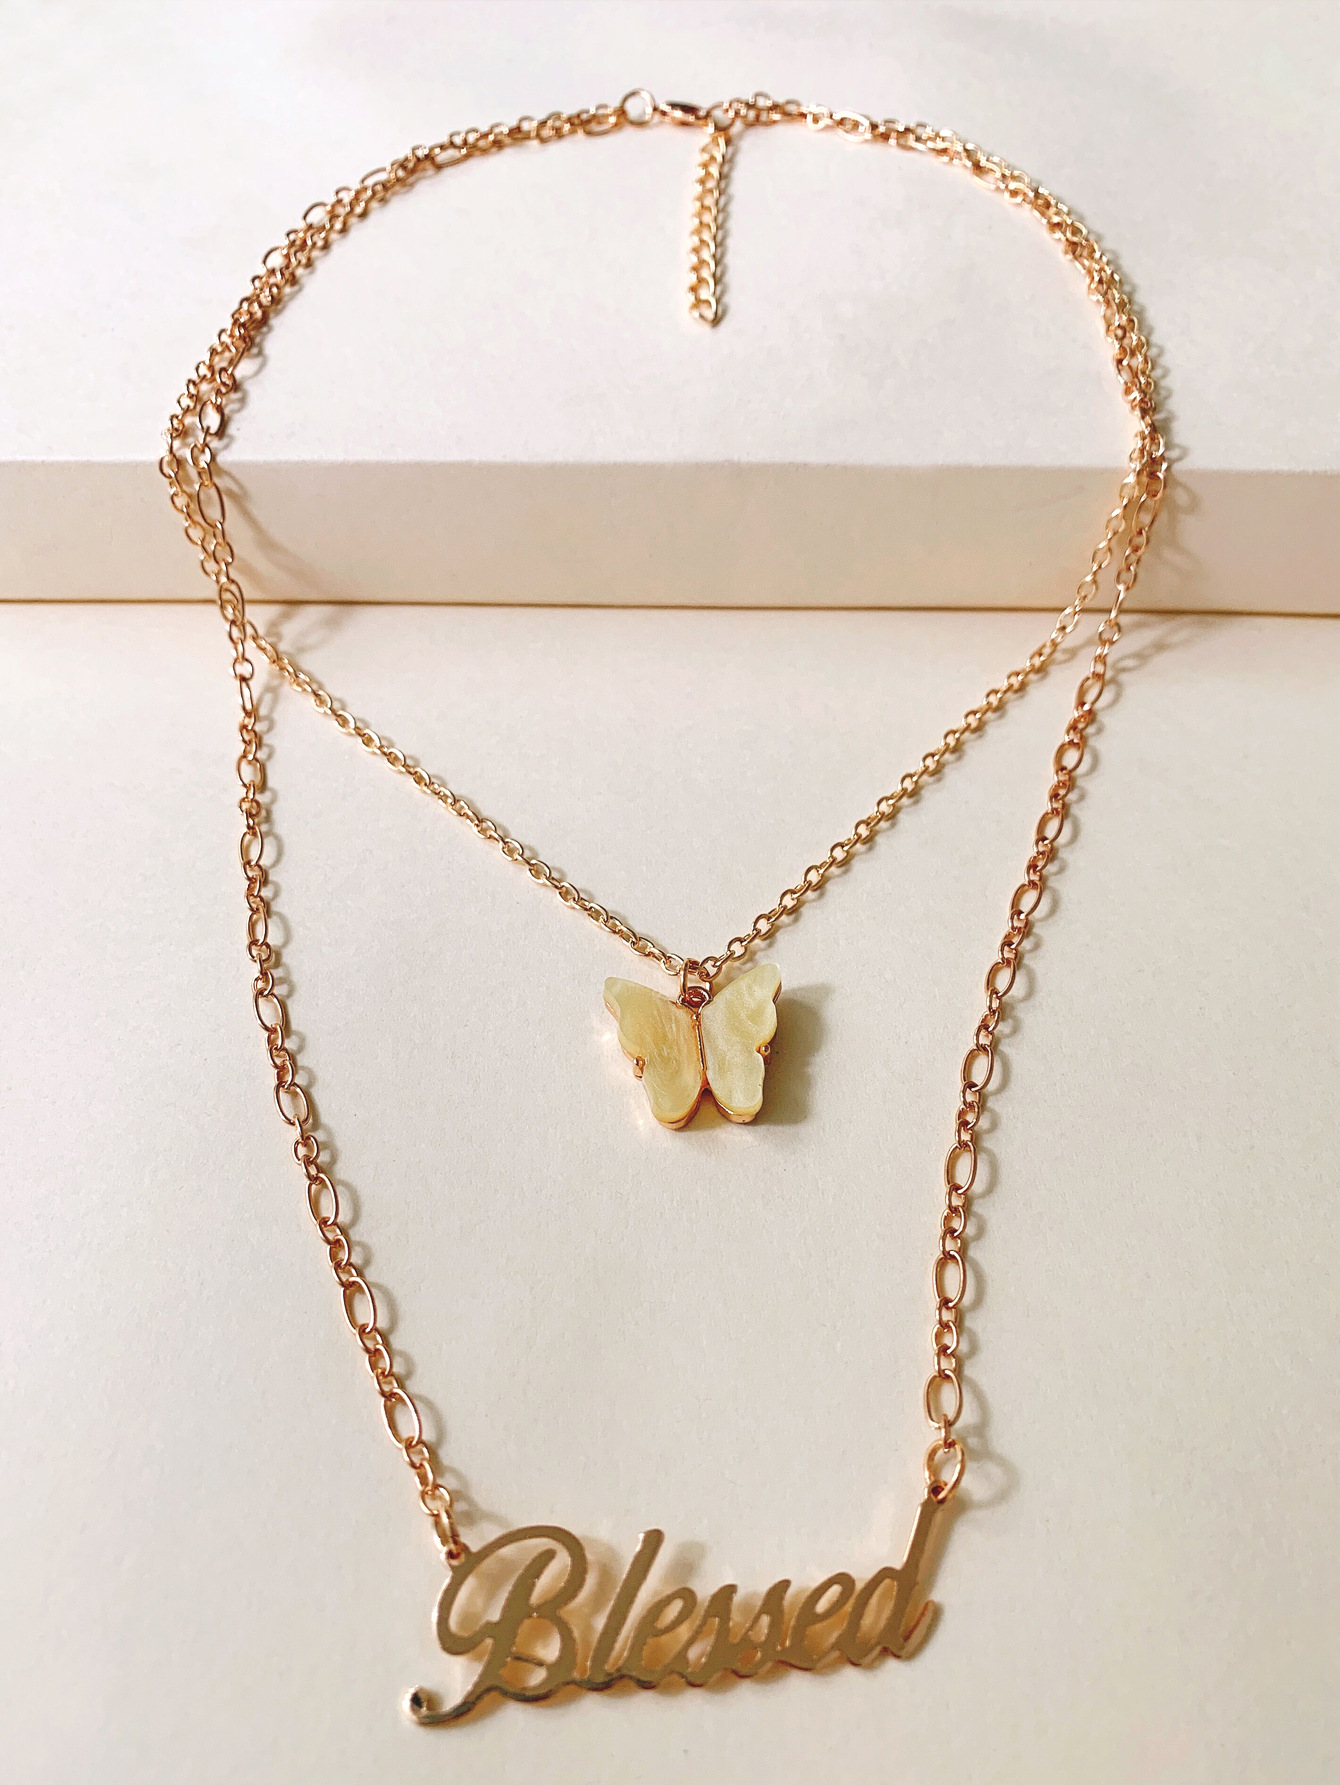 new double stacking necklace English alphabet butterfly neck chain sweater chain wholesale nihaojewelry NHUI221100